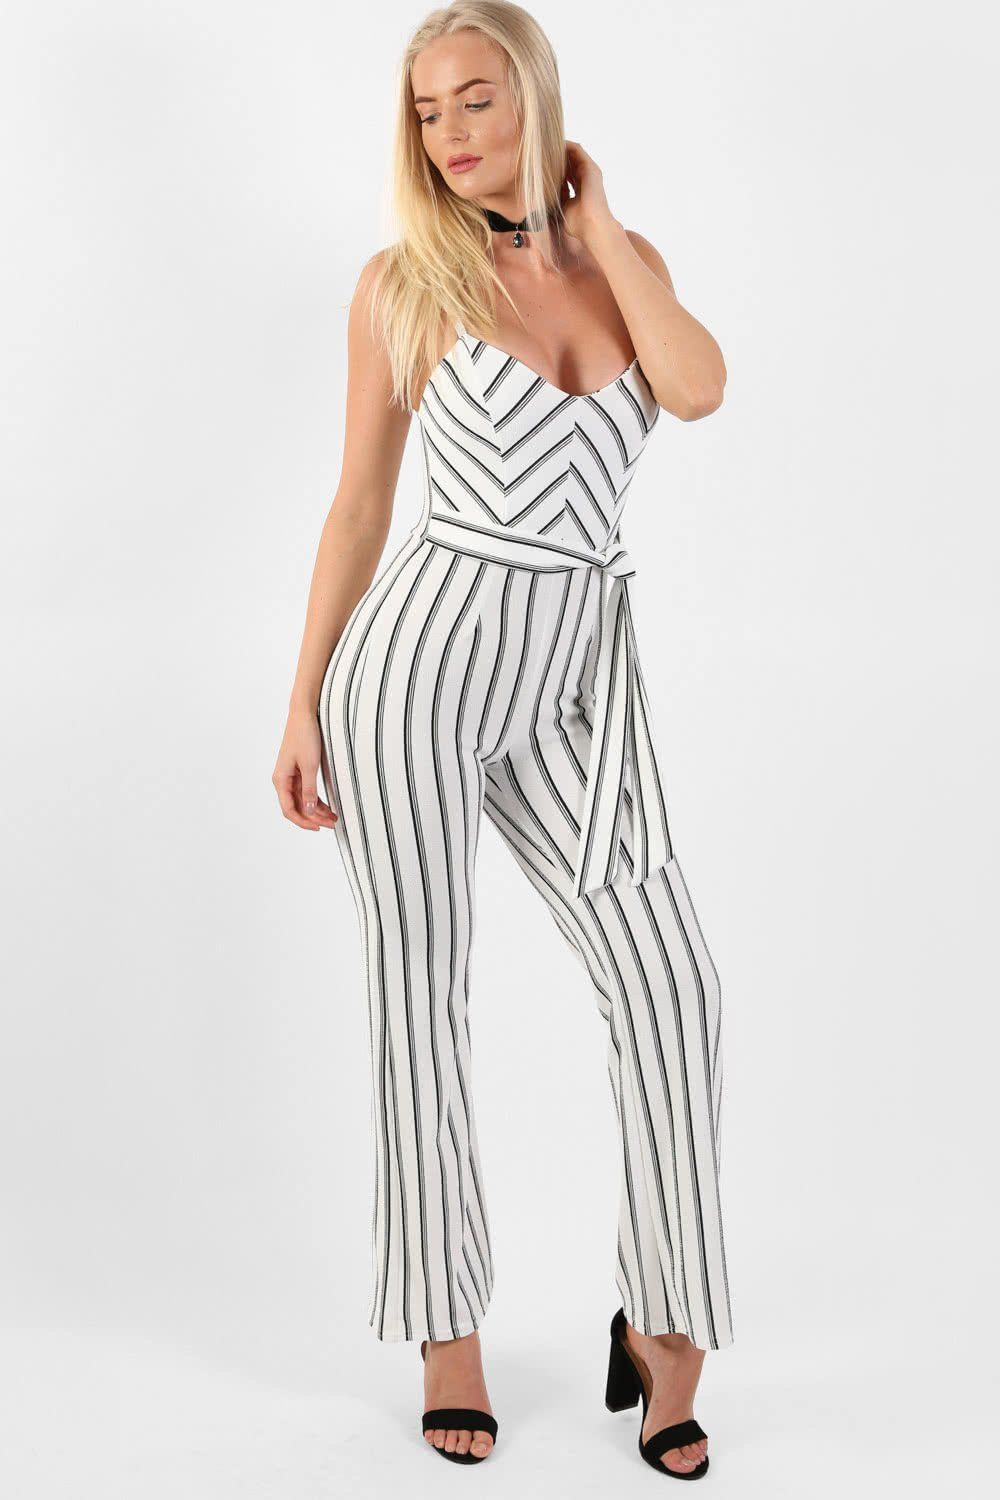 Shorts - Monochrome Stripe Belted Jumpsuit In Cream